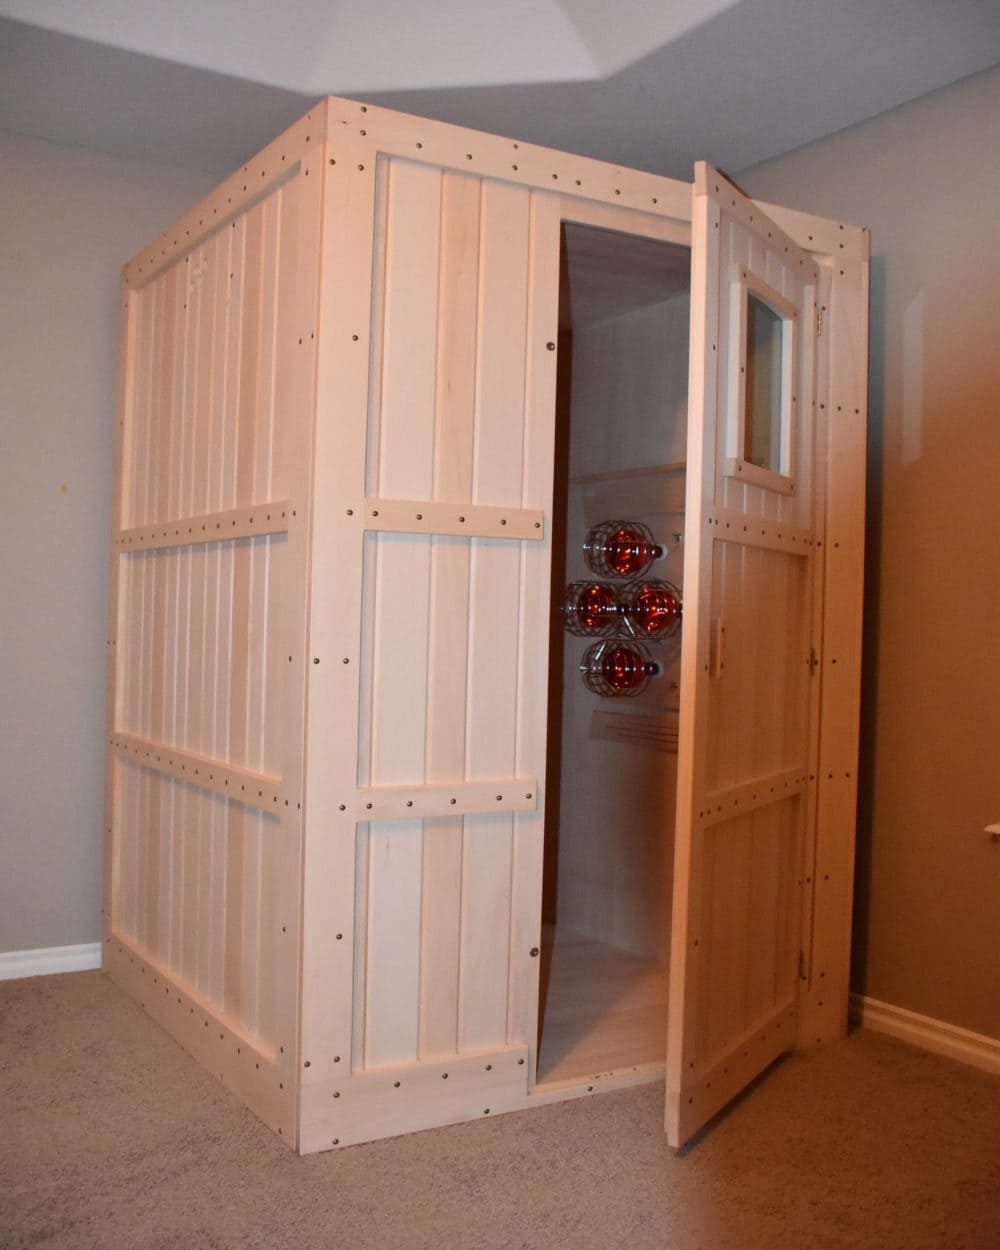 Home infrared sauna 1 person premium sauna comfort for Sauna home